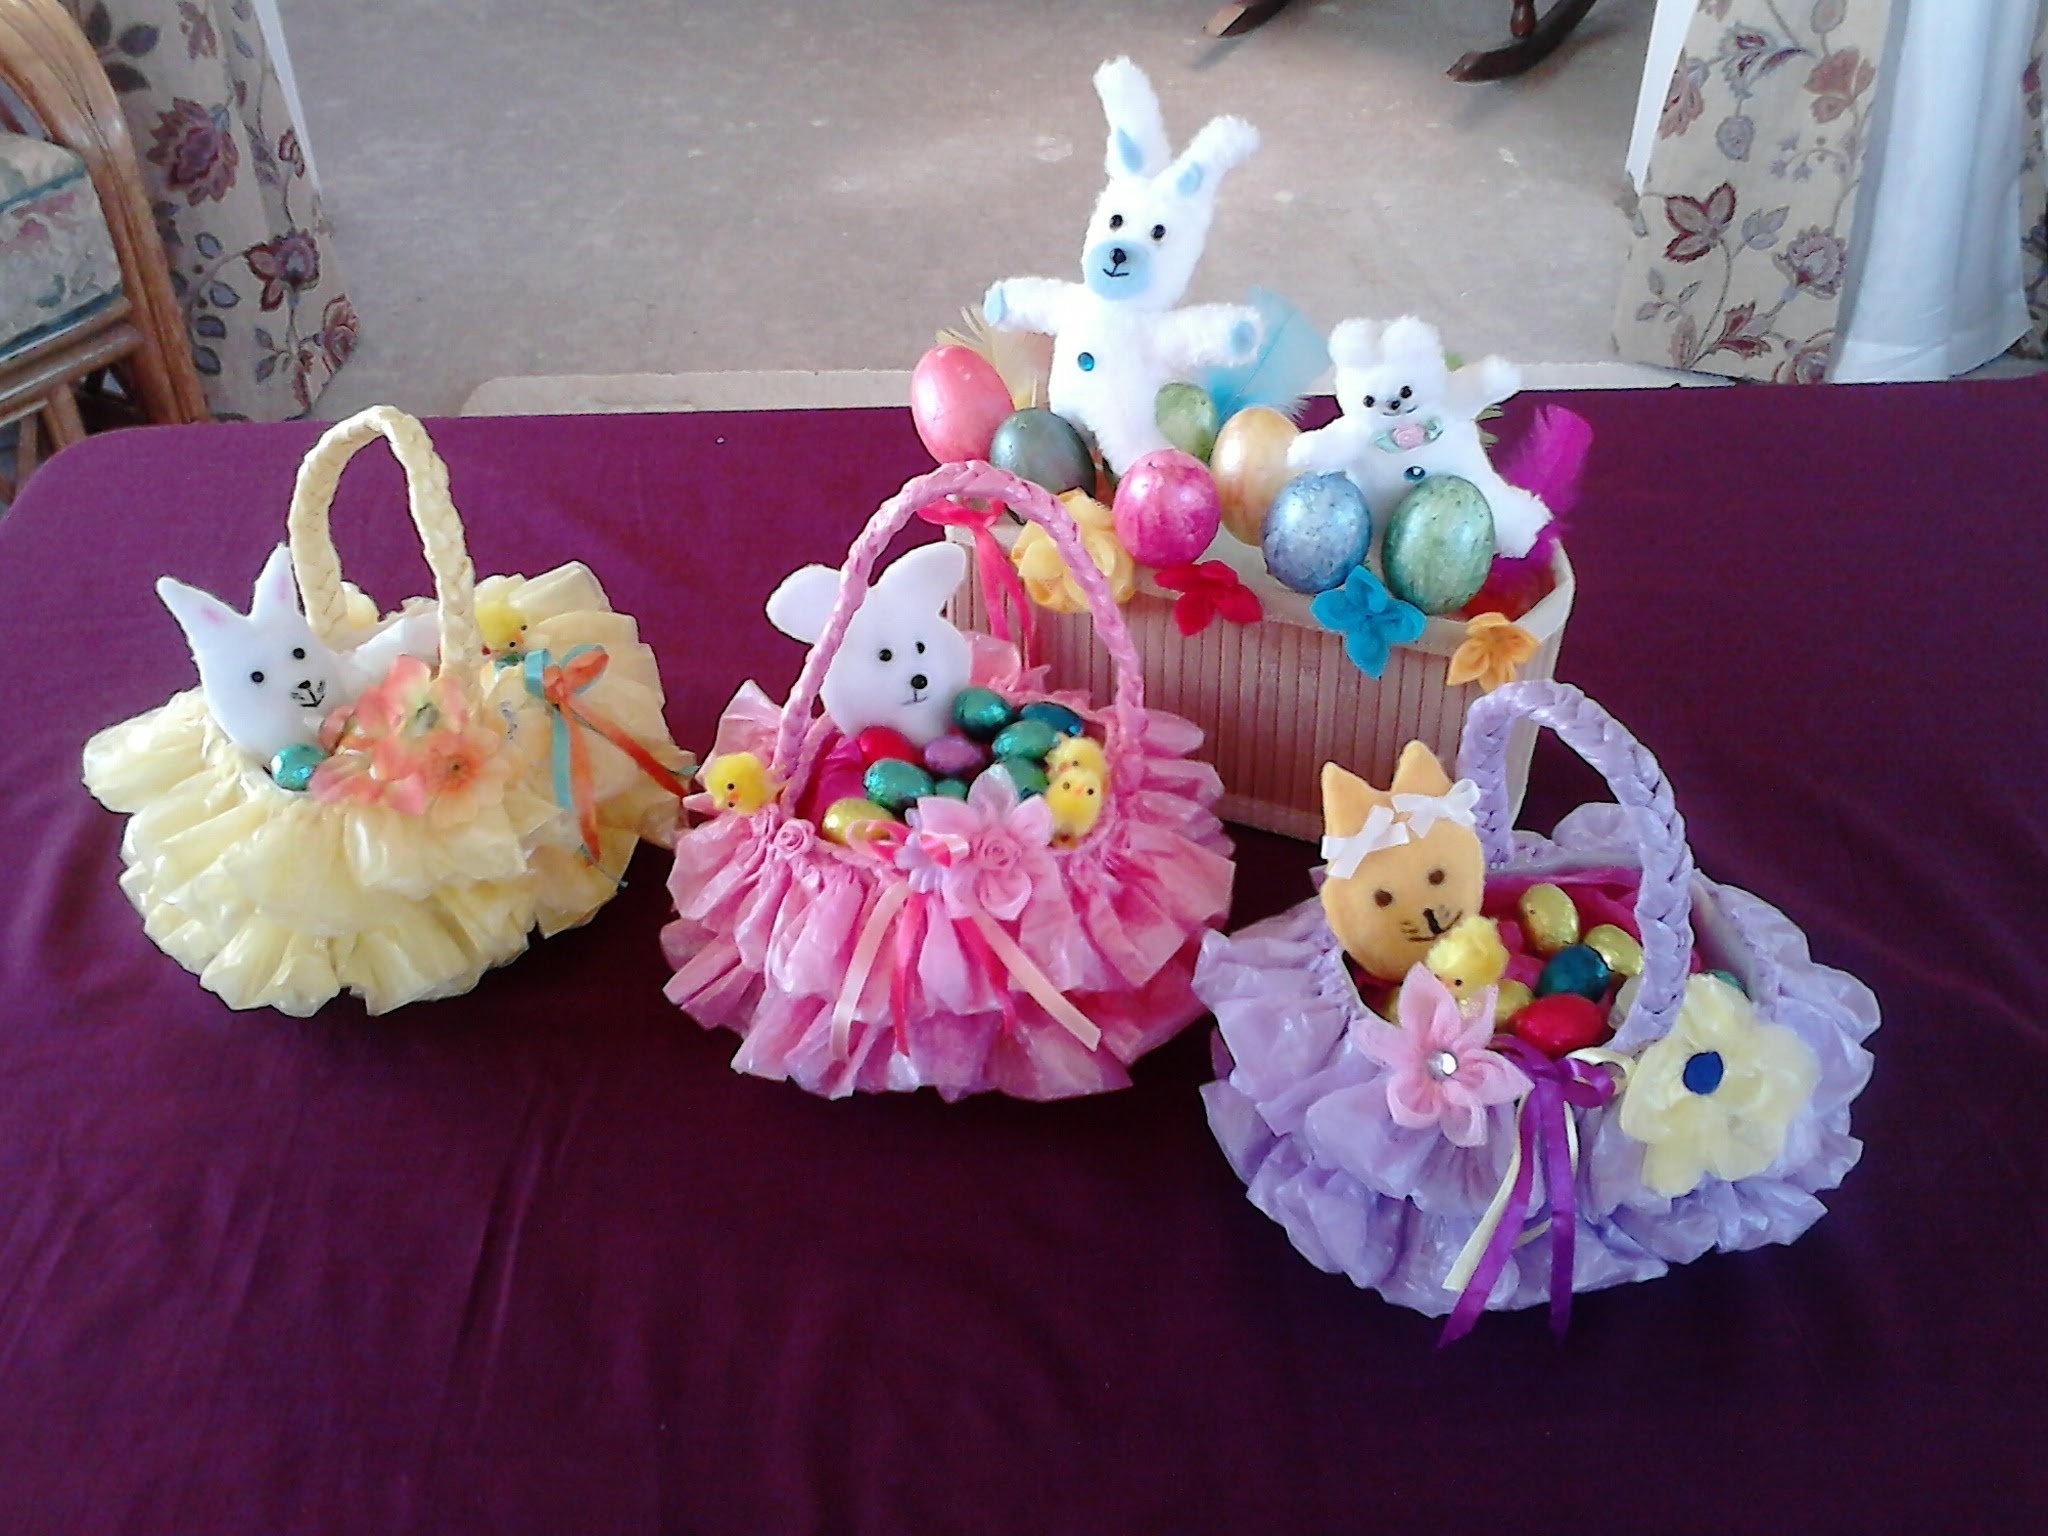 Easter Basket - crafted from recycled plastic bag and bottle-wonderfuldiy1